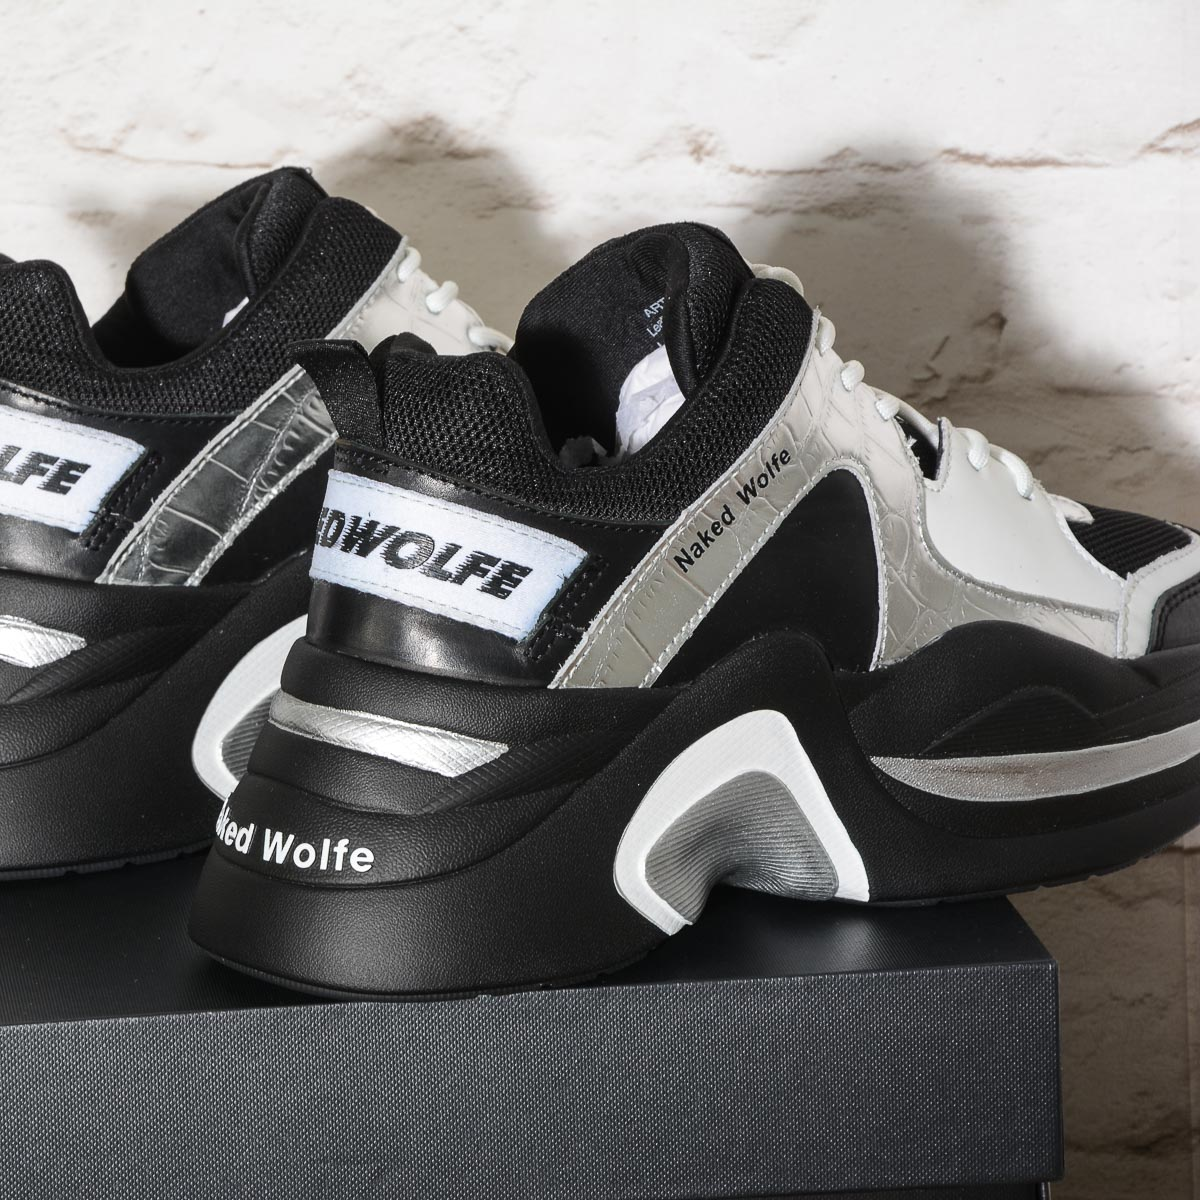 TRACK Double Black Combo NAKED WOLFE Sneakers Black-Black